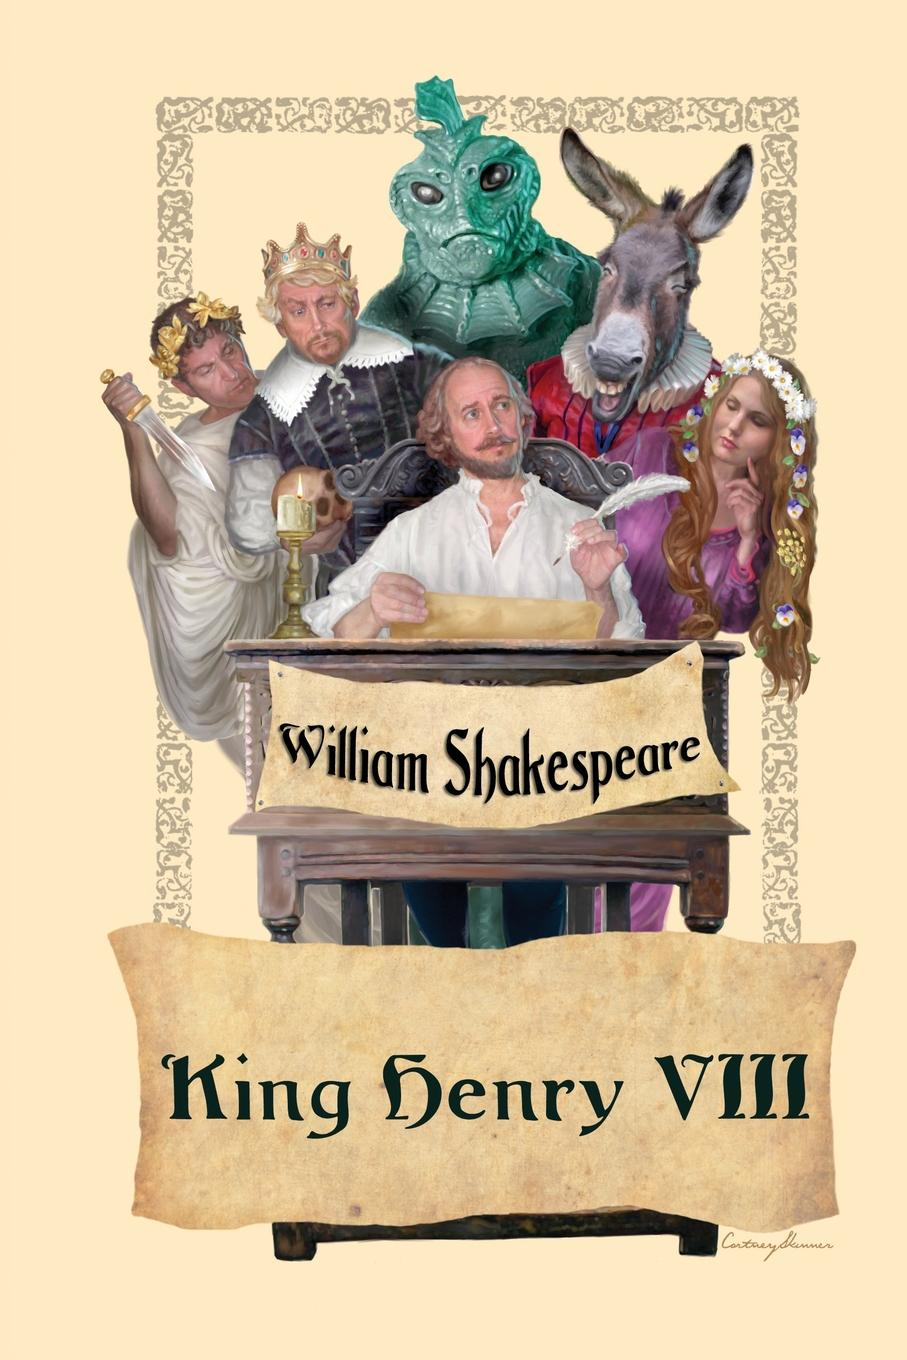 William Shakespeare King Henry VIII the corn king and the spring queen